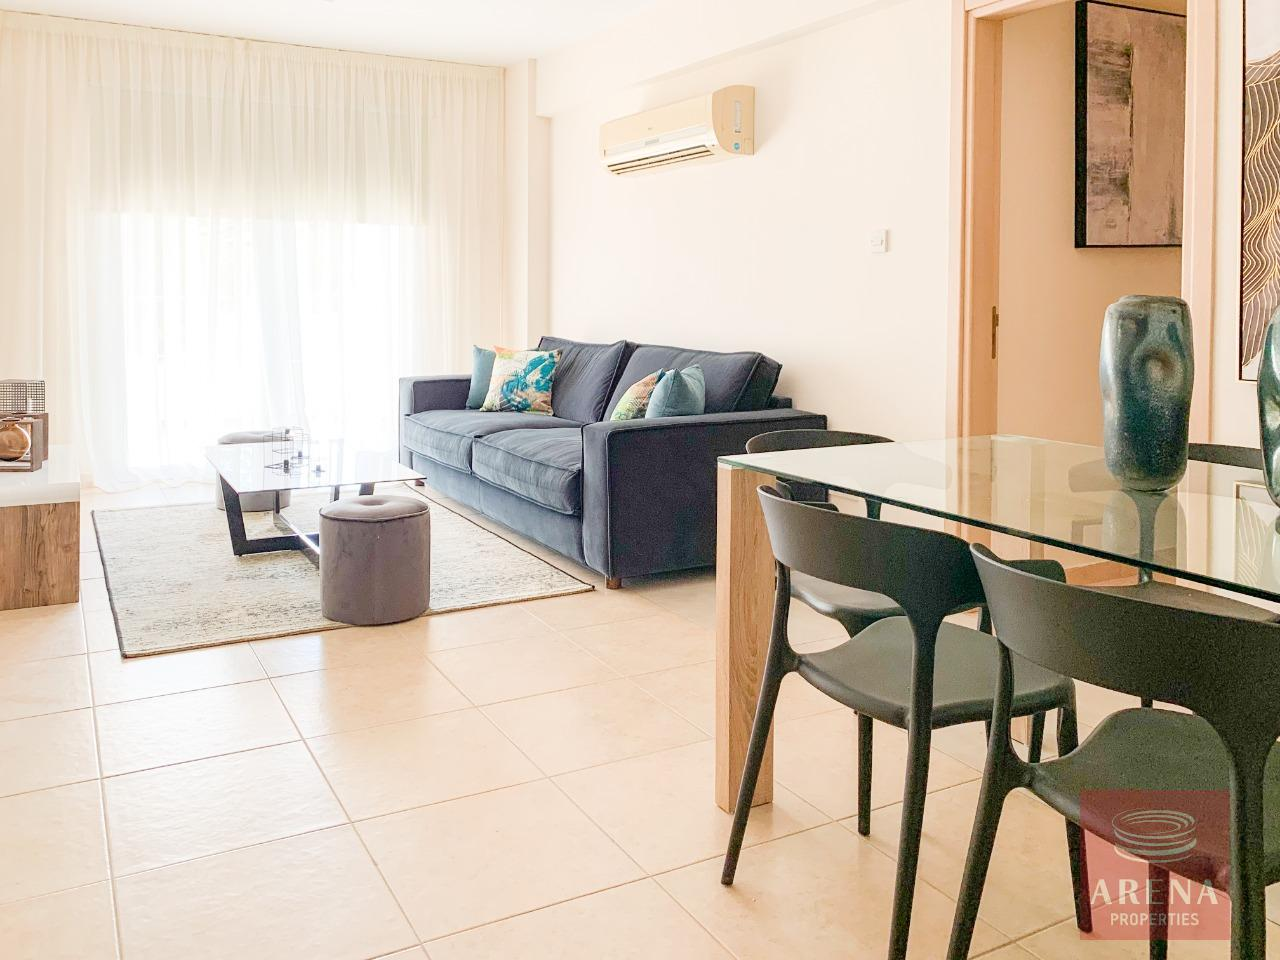 Apt for sale in Larnaca - living area